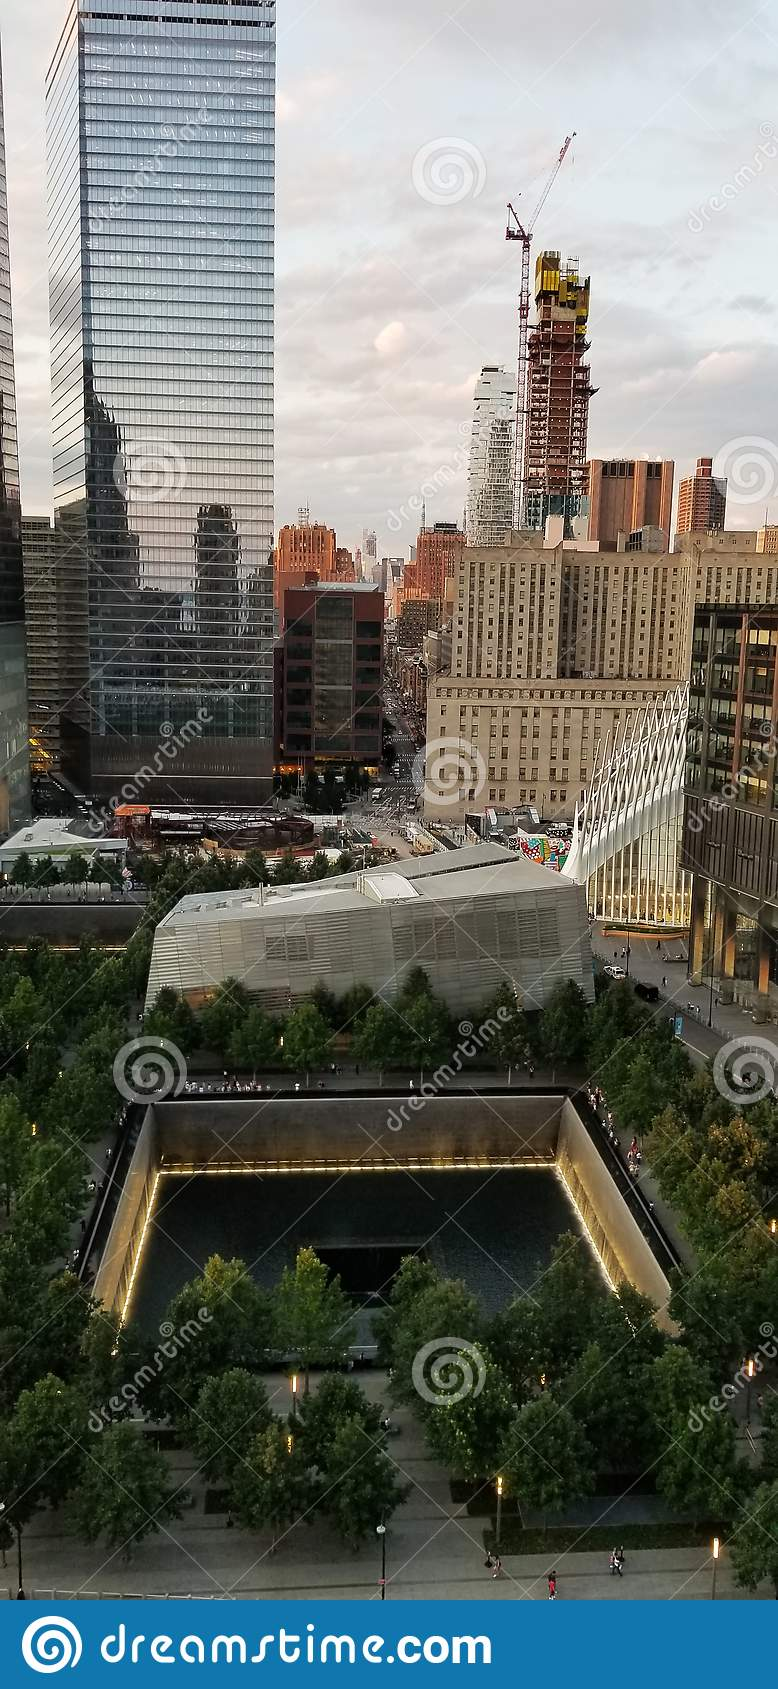 9/11 Memorial Museum August 9, 2019 View From Above